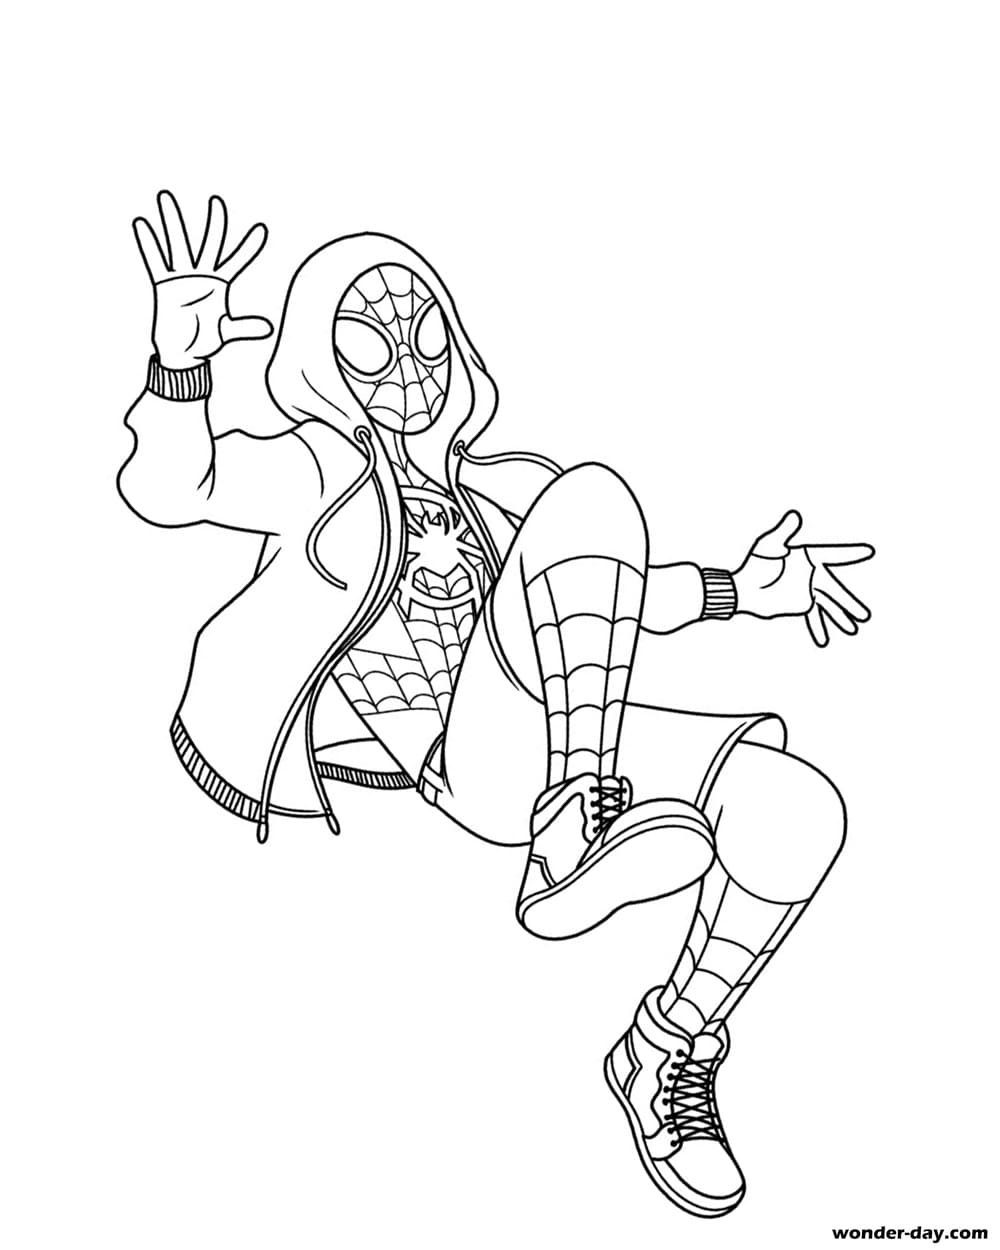 miles morales spiderman coloring page spiderman miles morales coloring pages ferrisquinlanjamal morales spiderman miles page coloring